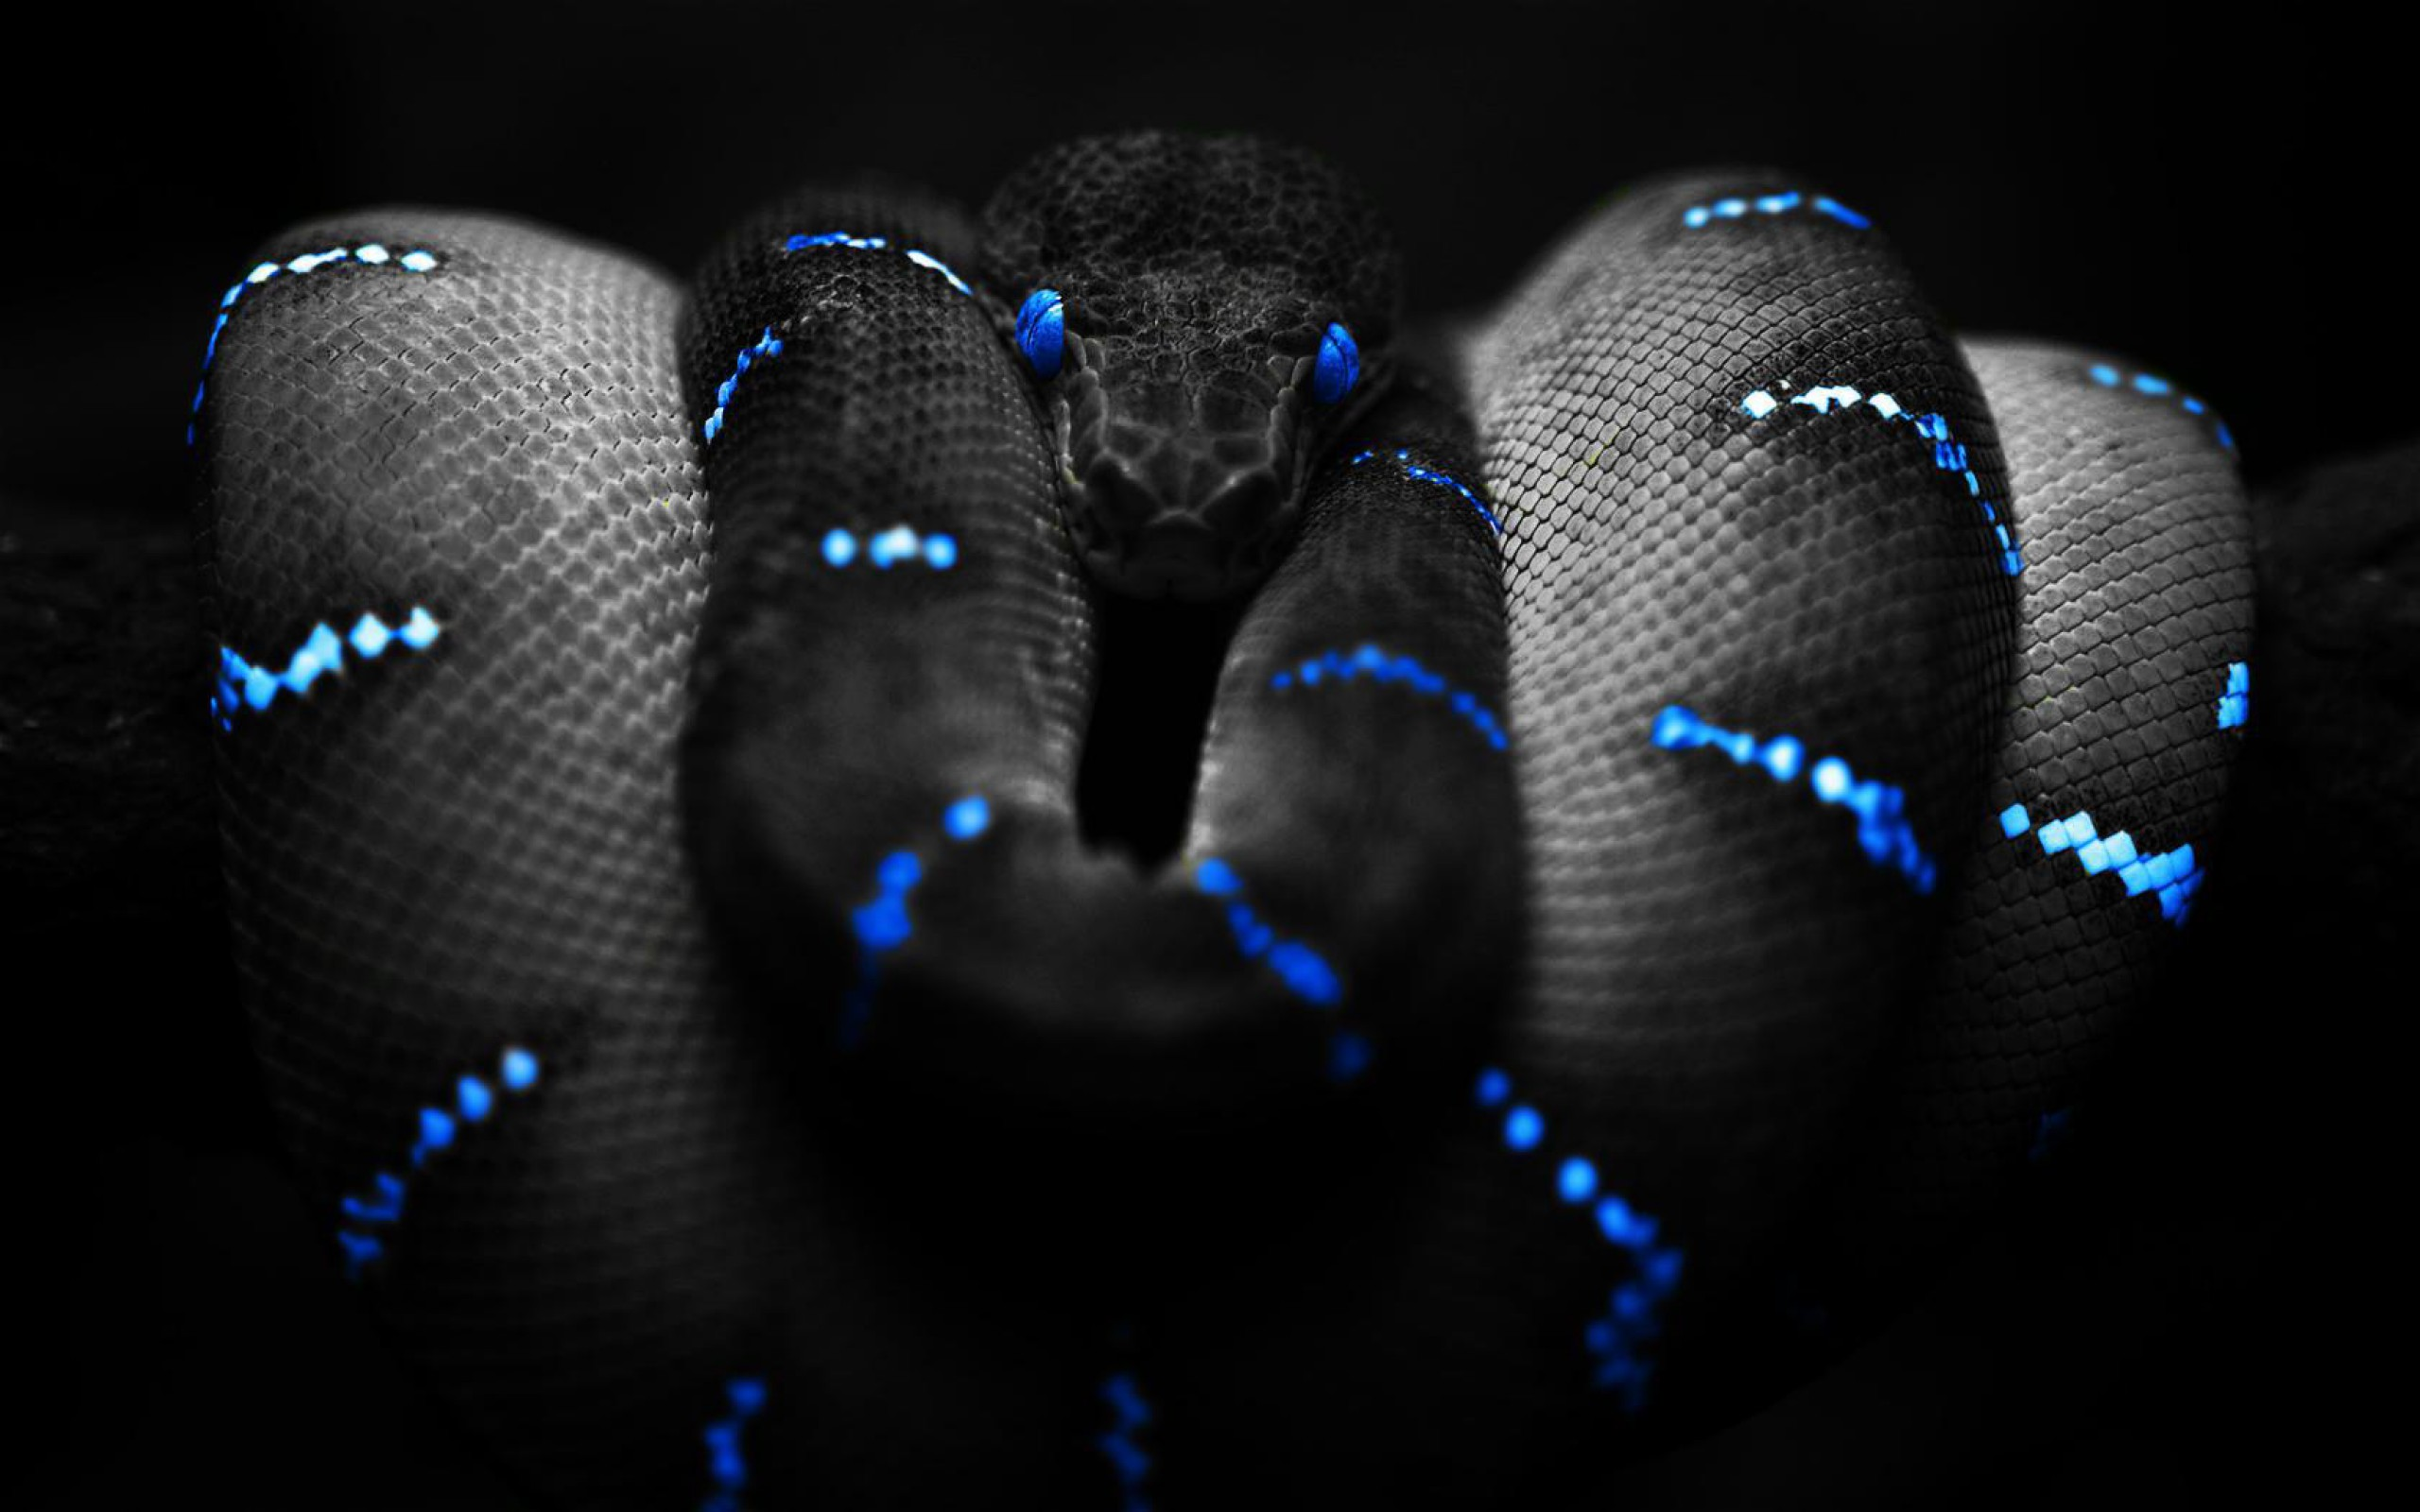 snake background | hd wallpapers pulse